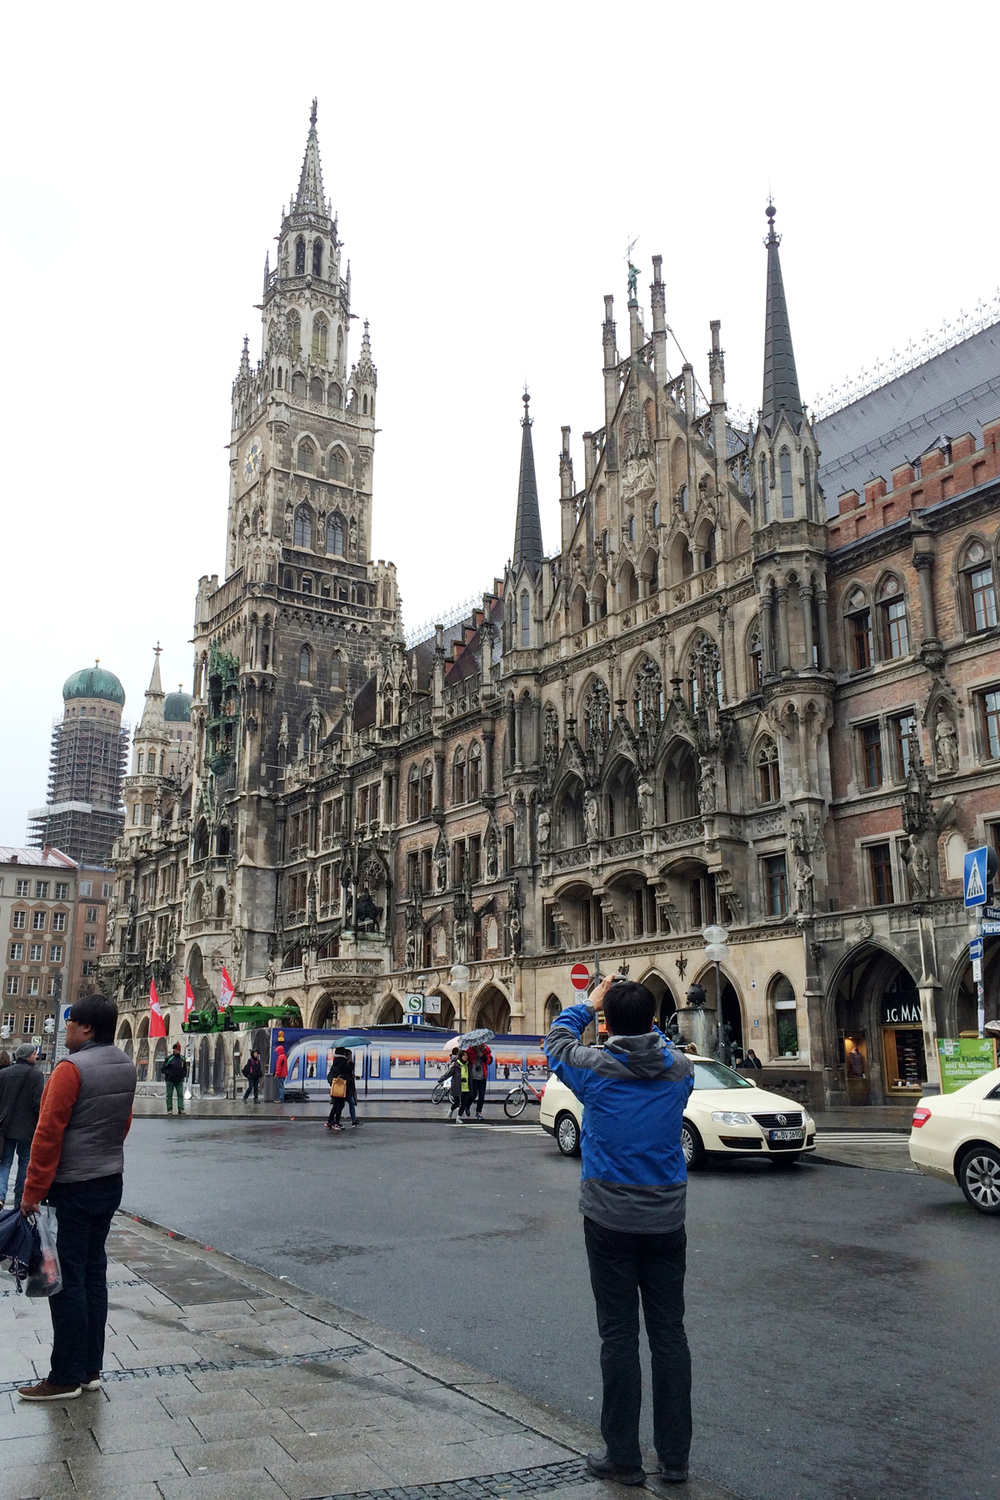 This beautiful Gothic architecture houses a shopping mall.